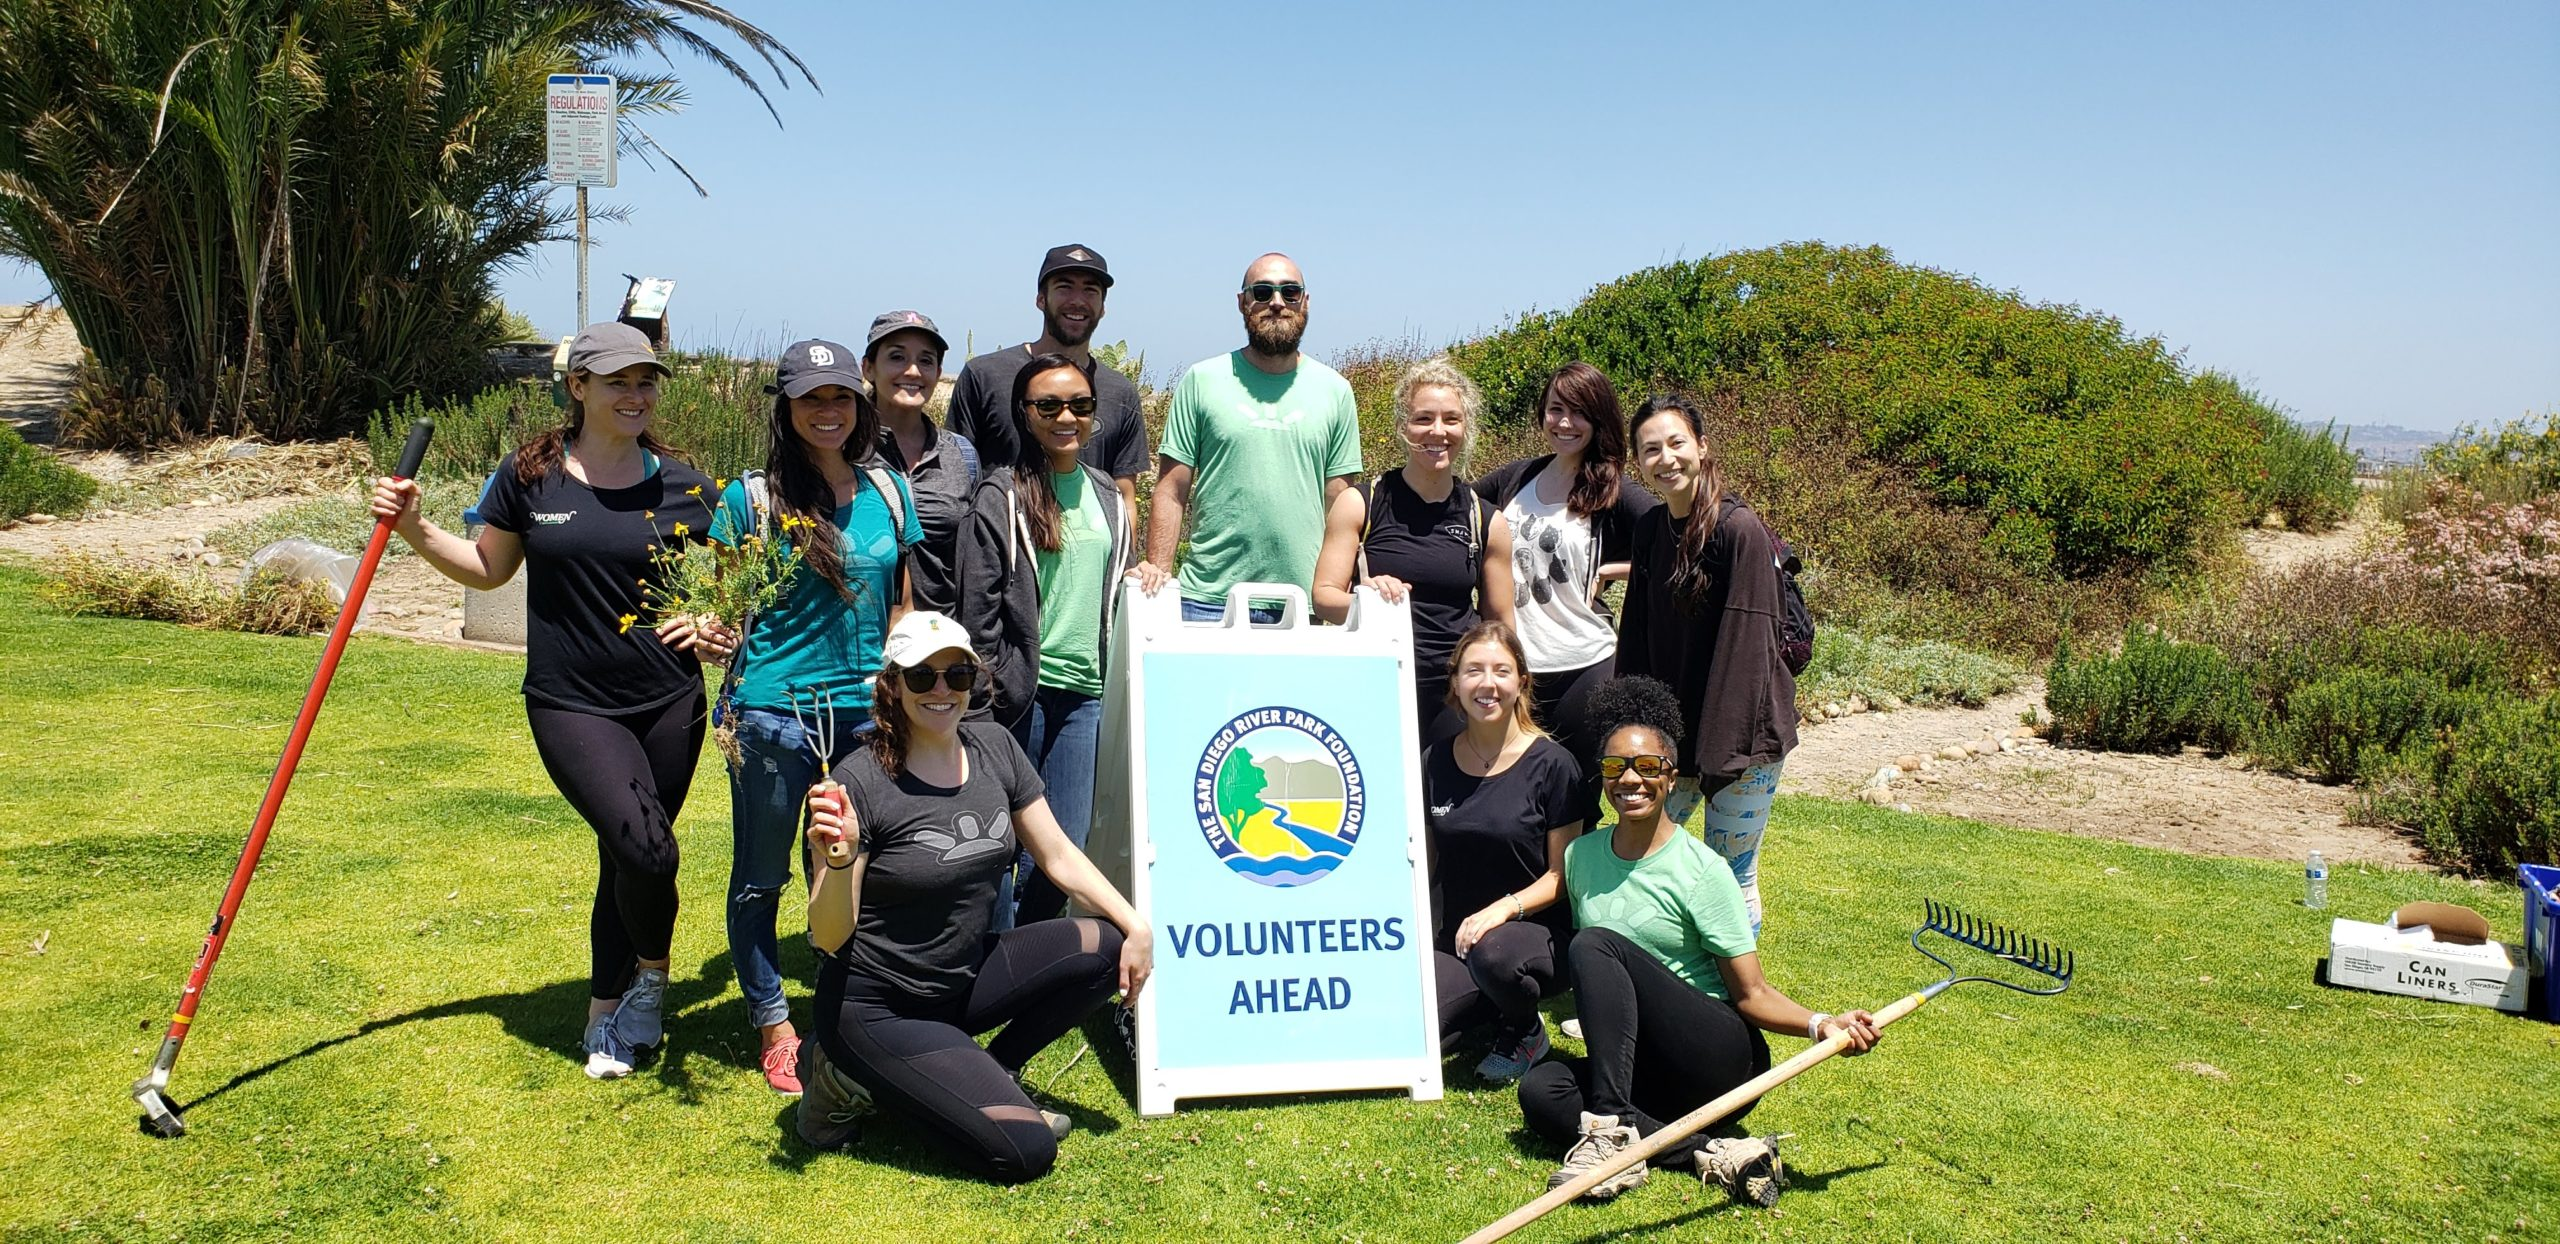 gofundme employees at a volunteer event